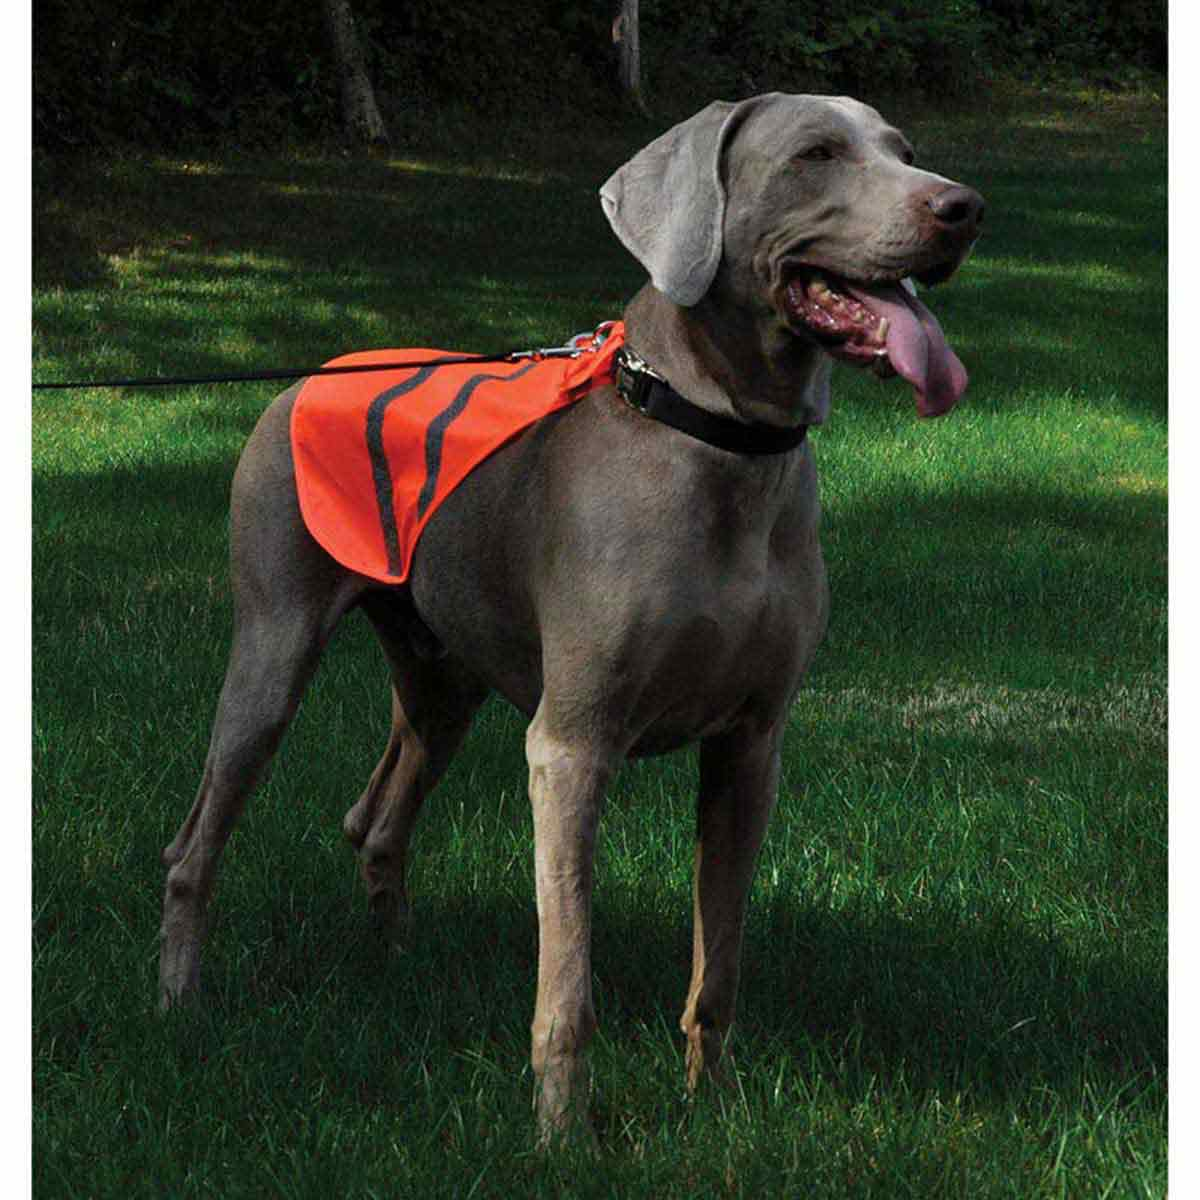 Coastal Reflective Orange Safety Vest for Small Dogs Up to 18 lbs